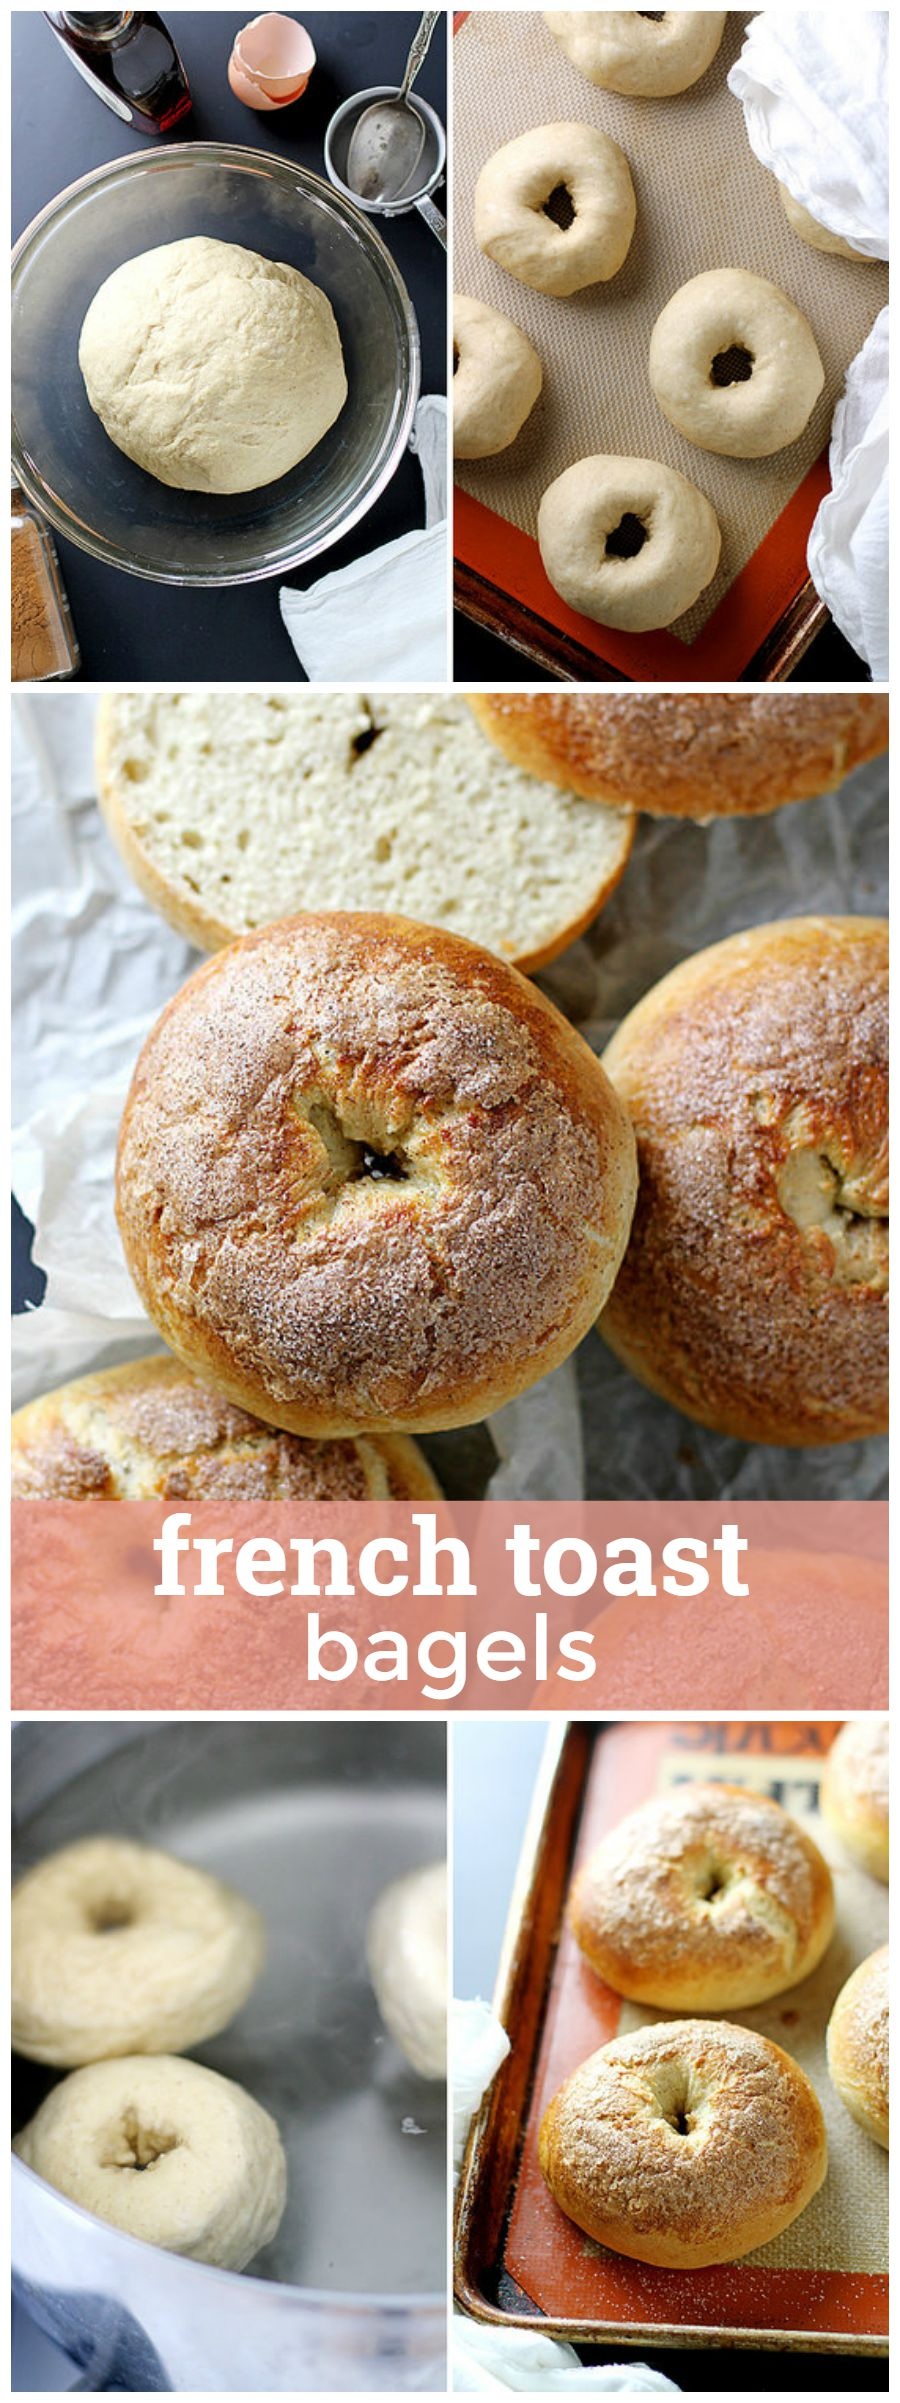 French Toast Bagels  Fluffy, Flavorful Bagels With A Cinnamon Crunch  Topping! Girlversusdough